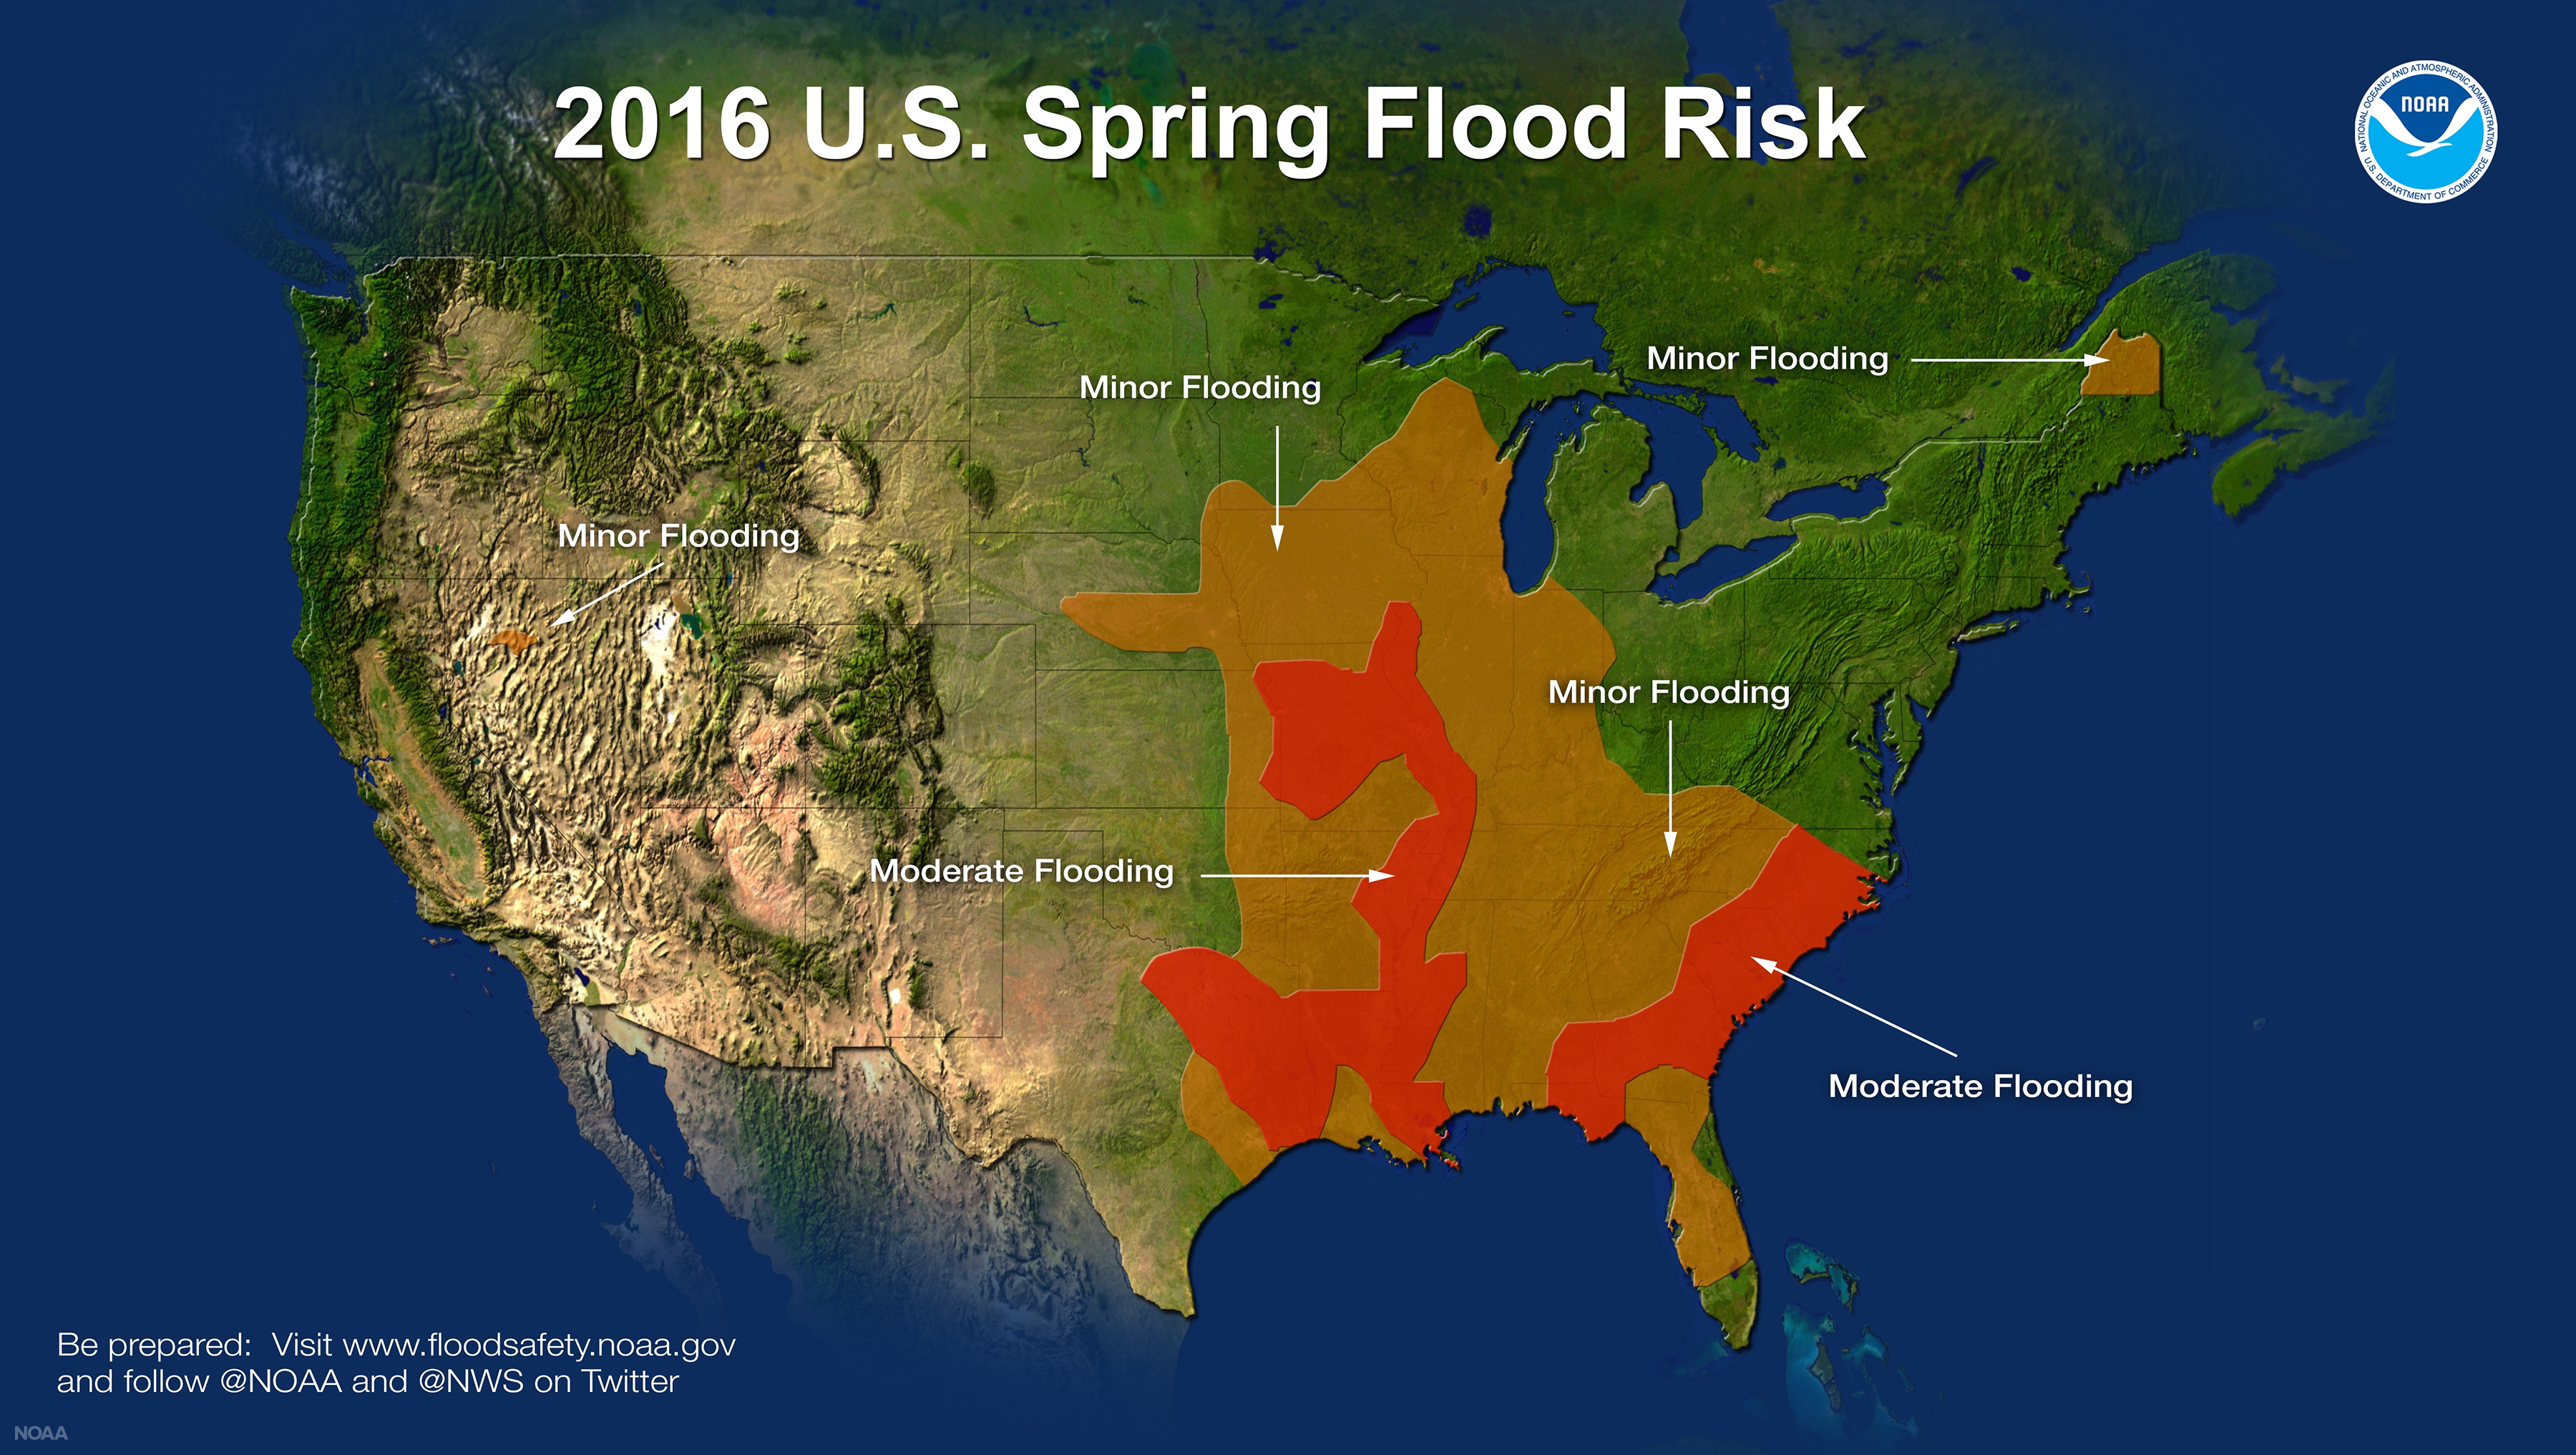 Luxury Idea Map Of Flooded Areas In Texas Mapping Coastal Flood Risk - Spring Texas Flooding Map